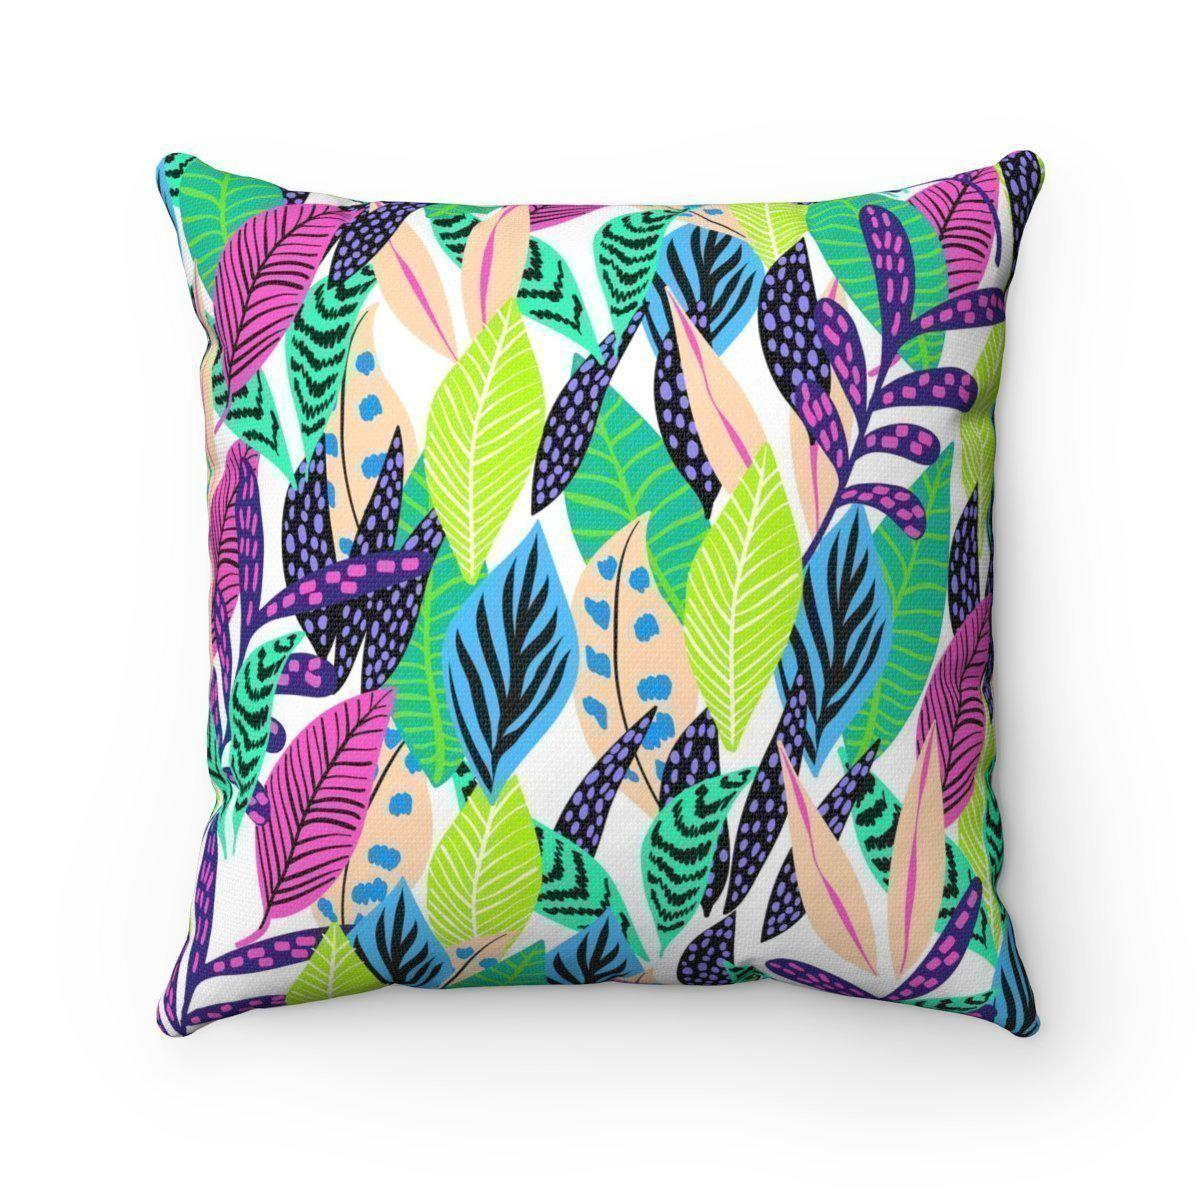 Modern tropical leaves jungle decorative cushion cover-Home Decor - Decorative Accents - Pillows & Throws - Decorative Pillows-Maison d'Elite-14x14-Très Elite